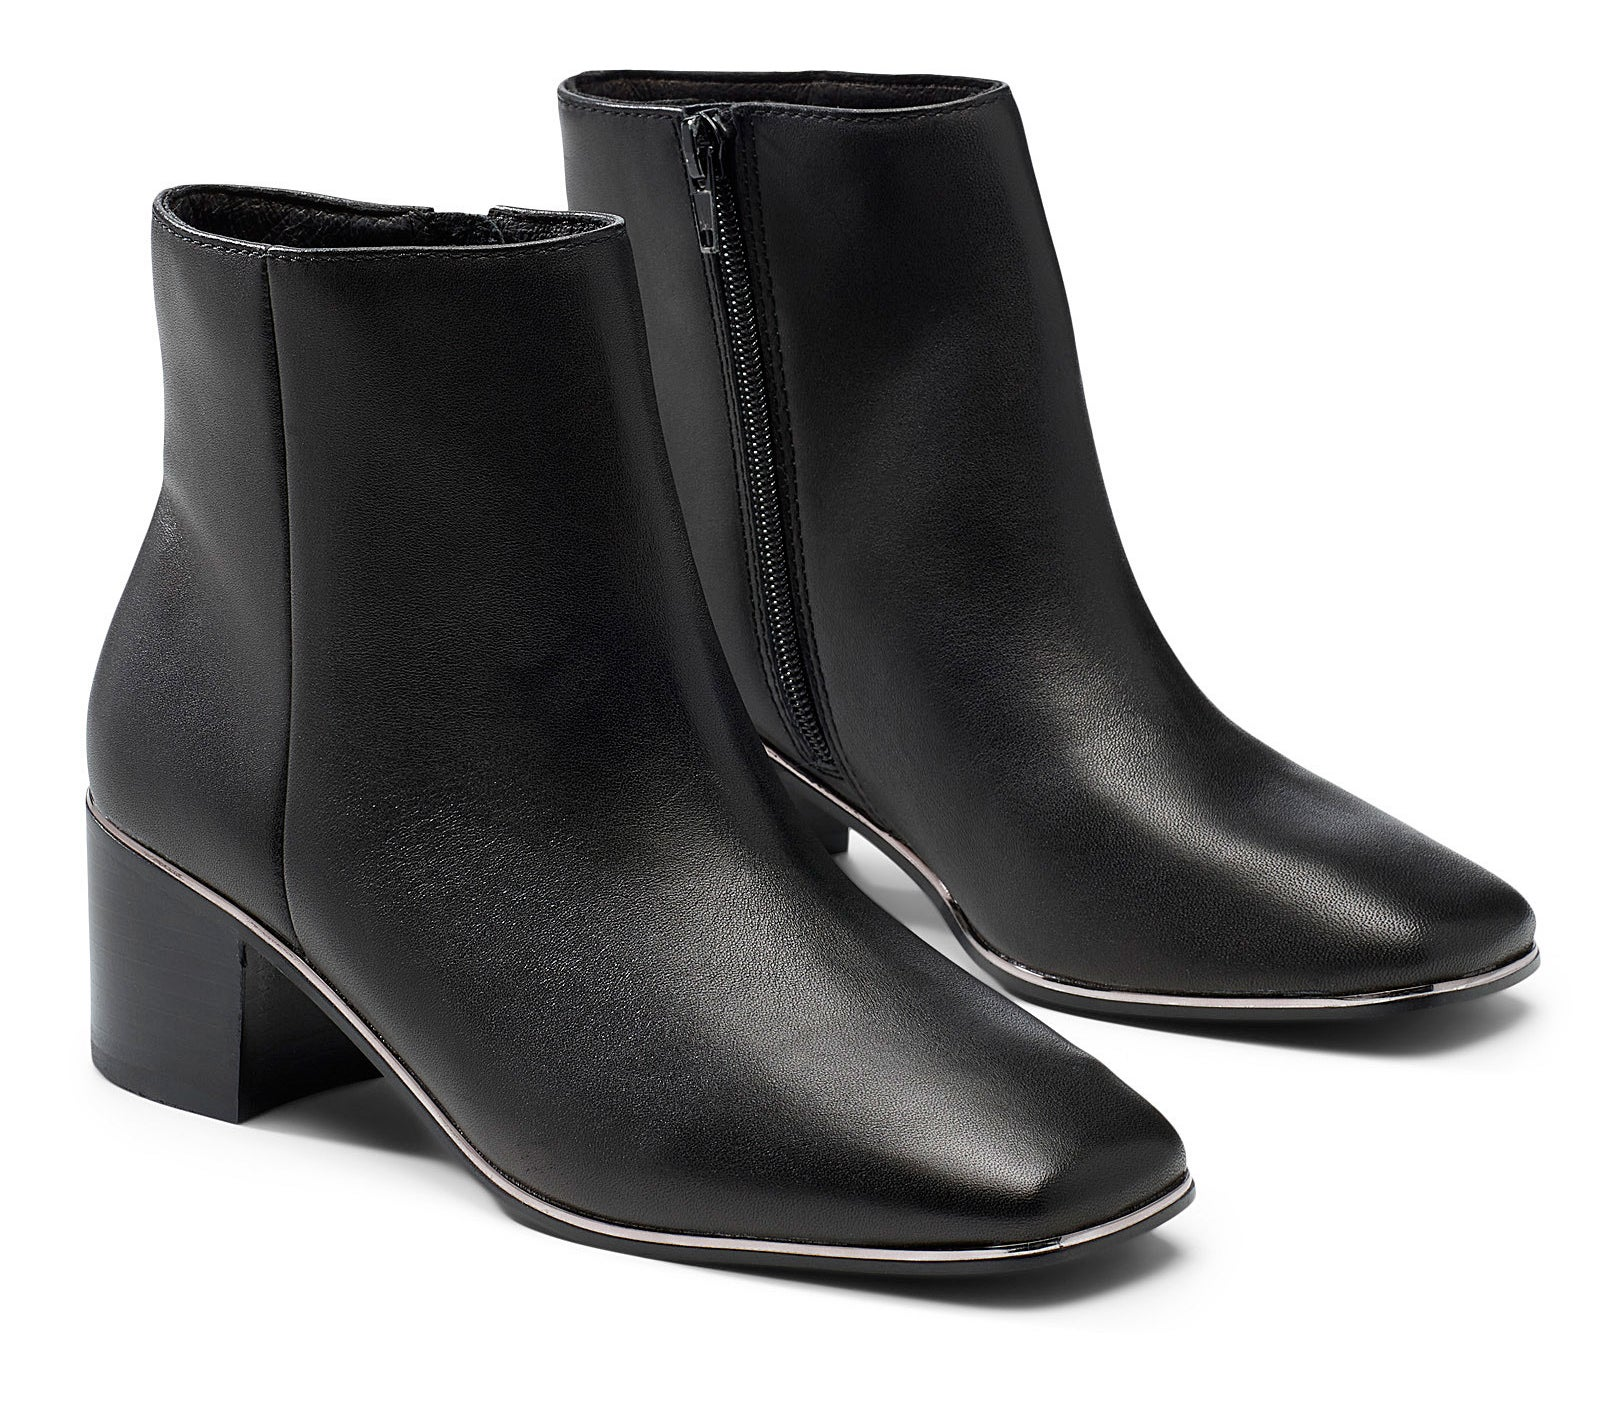 A pair of leather Chelsea boots on a plain background